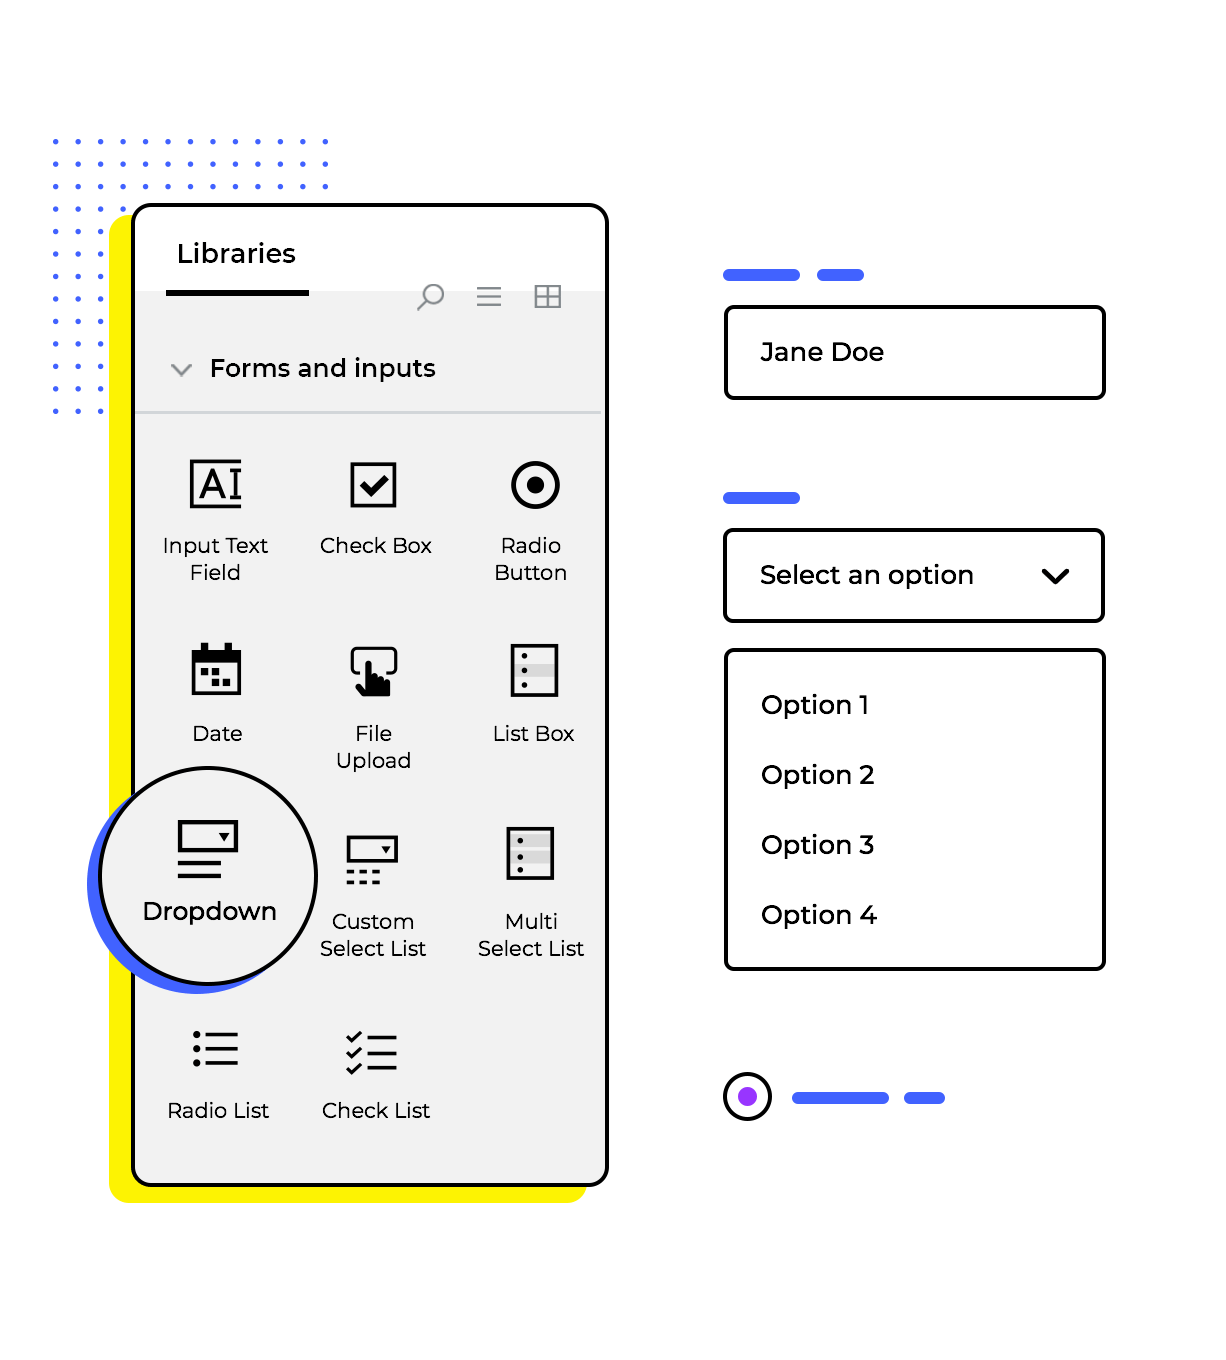 Website mockup tool for to design interactive forms